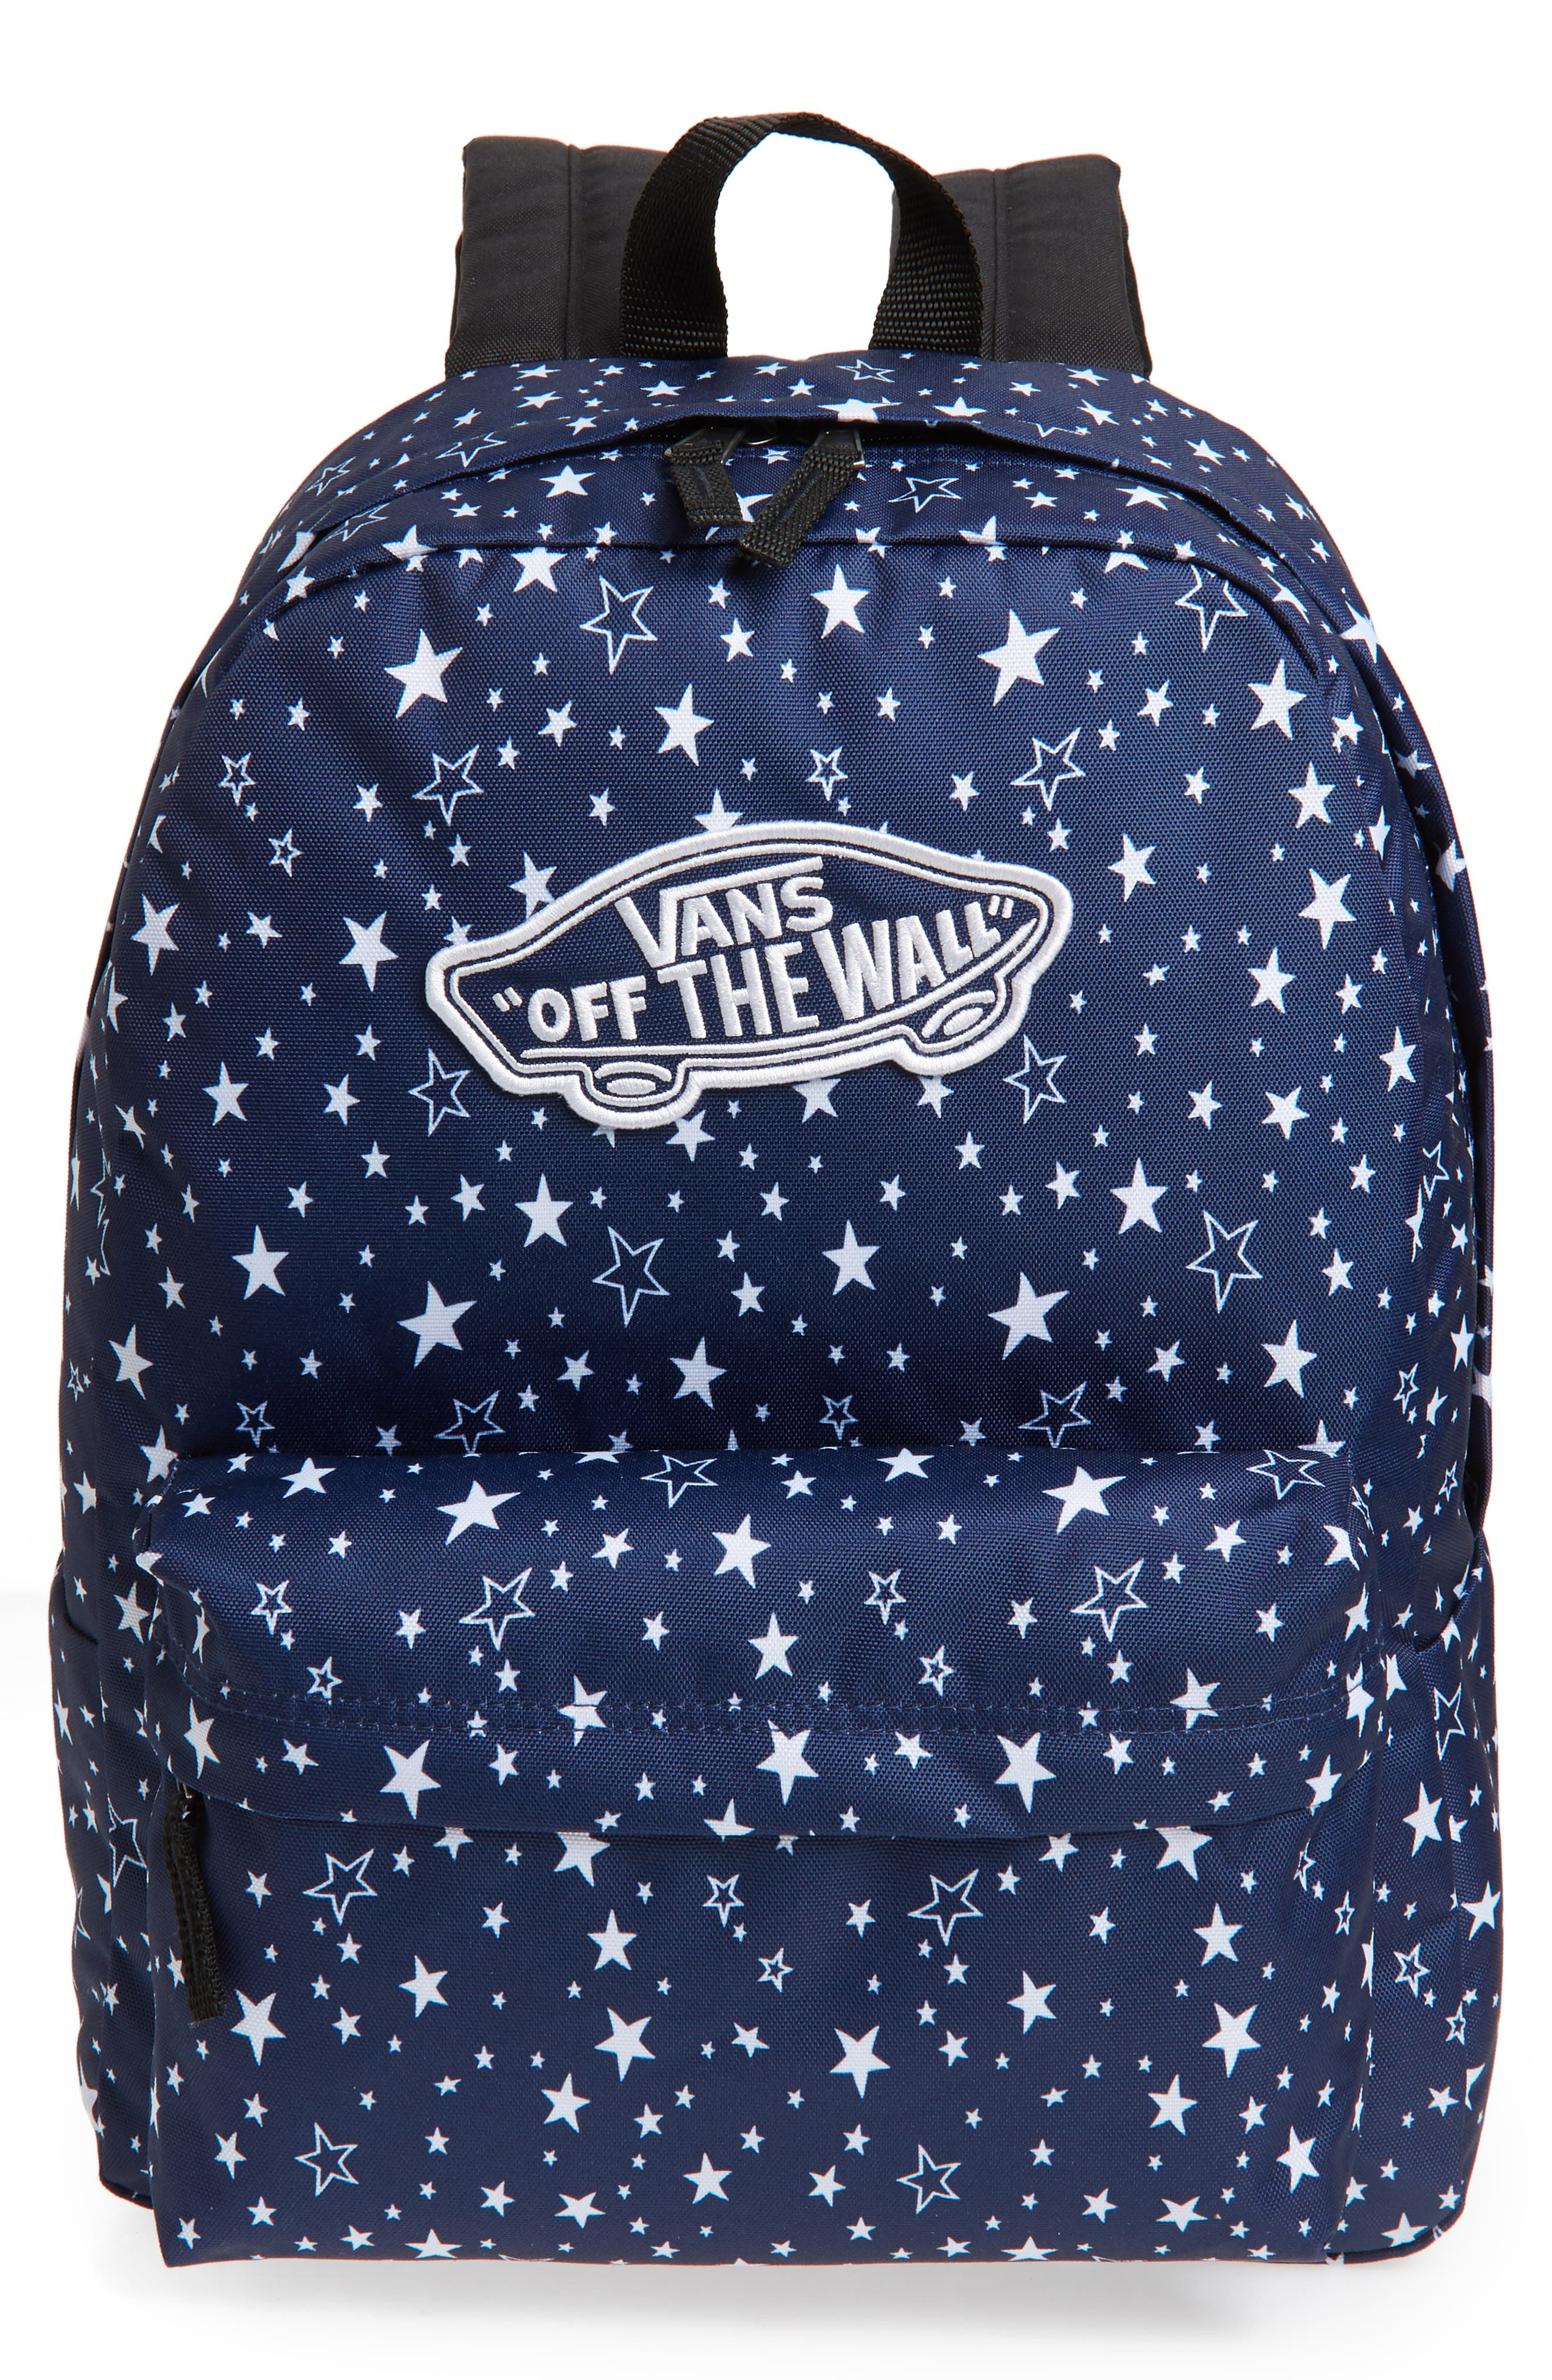 Realm Backpack,                             Main thumbnail 1, color,                             MEDIEVAL BLUE STAR